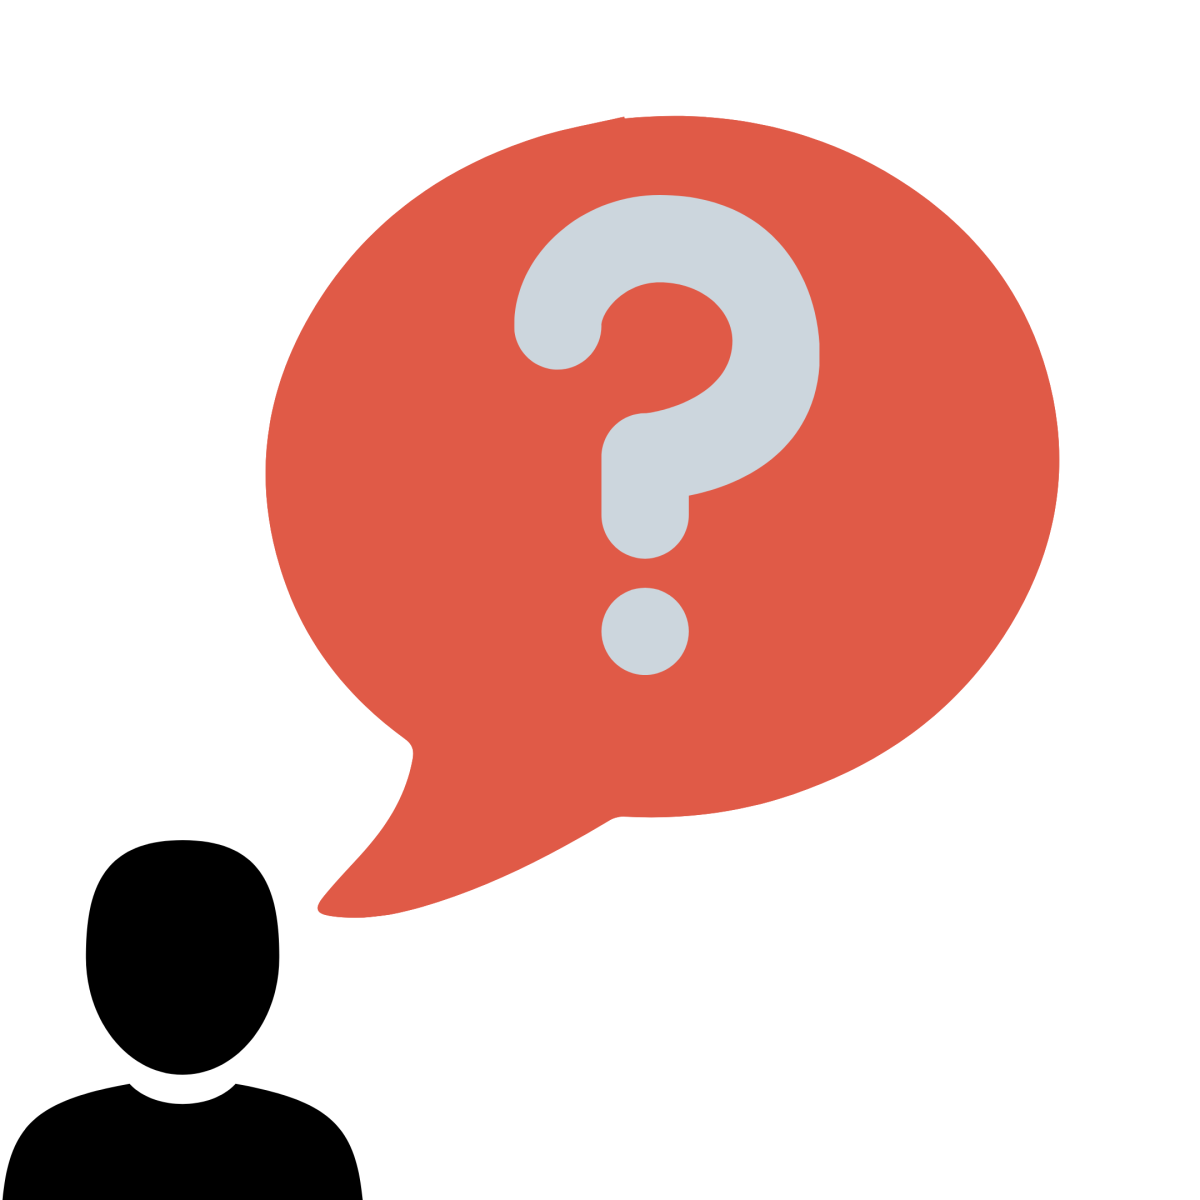 questions-to-ask-your-interviewer-based-on-their-professional-scope